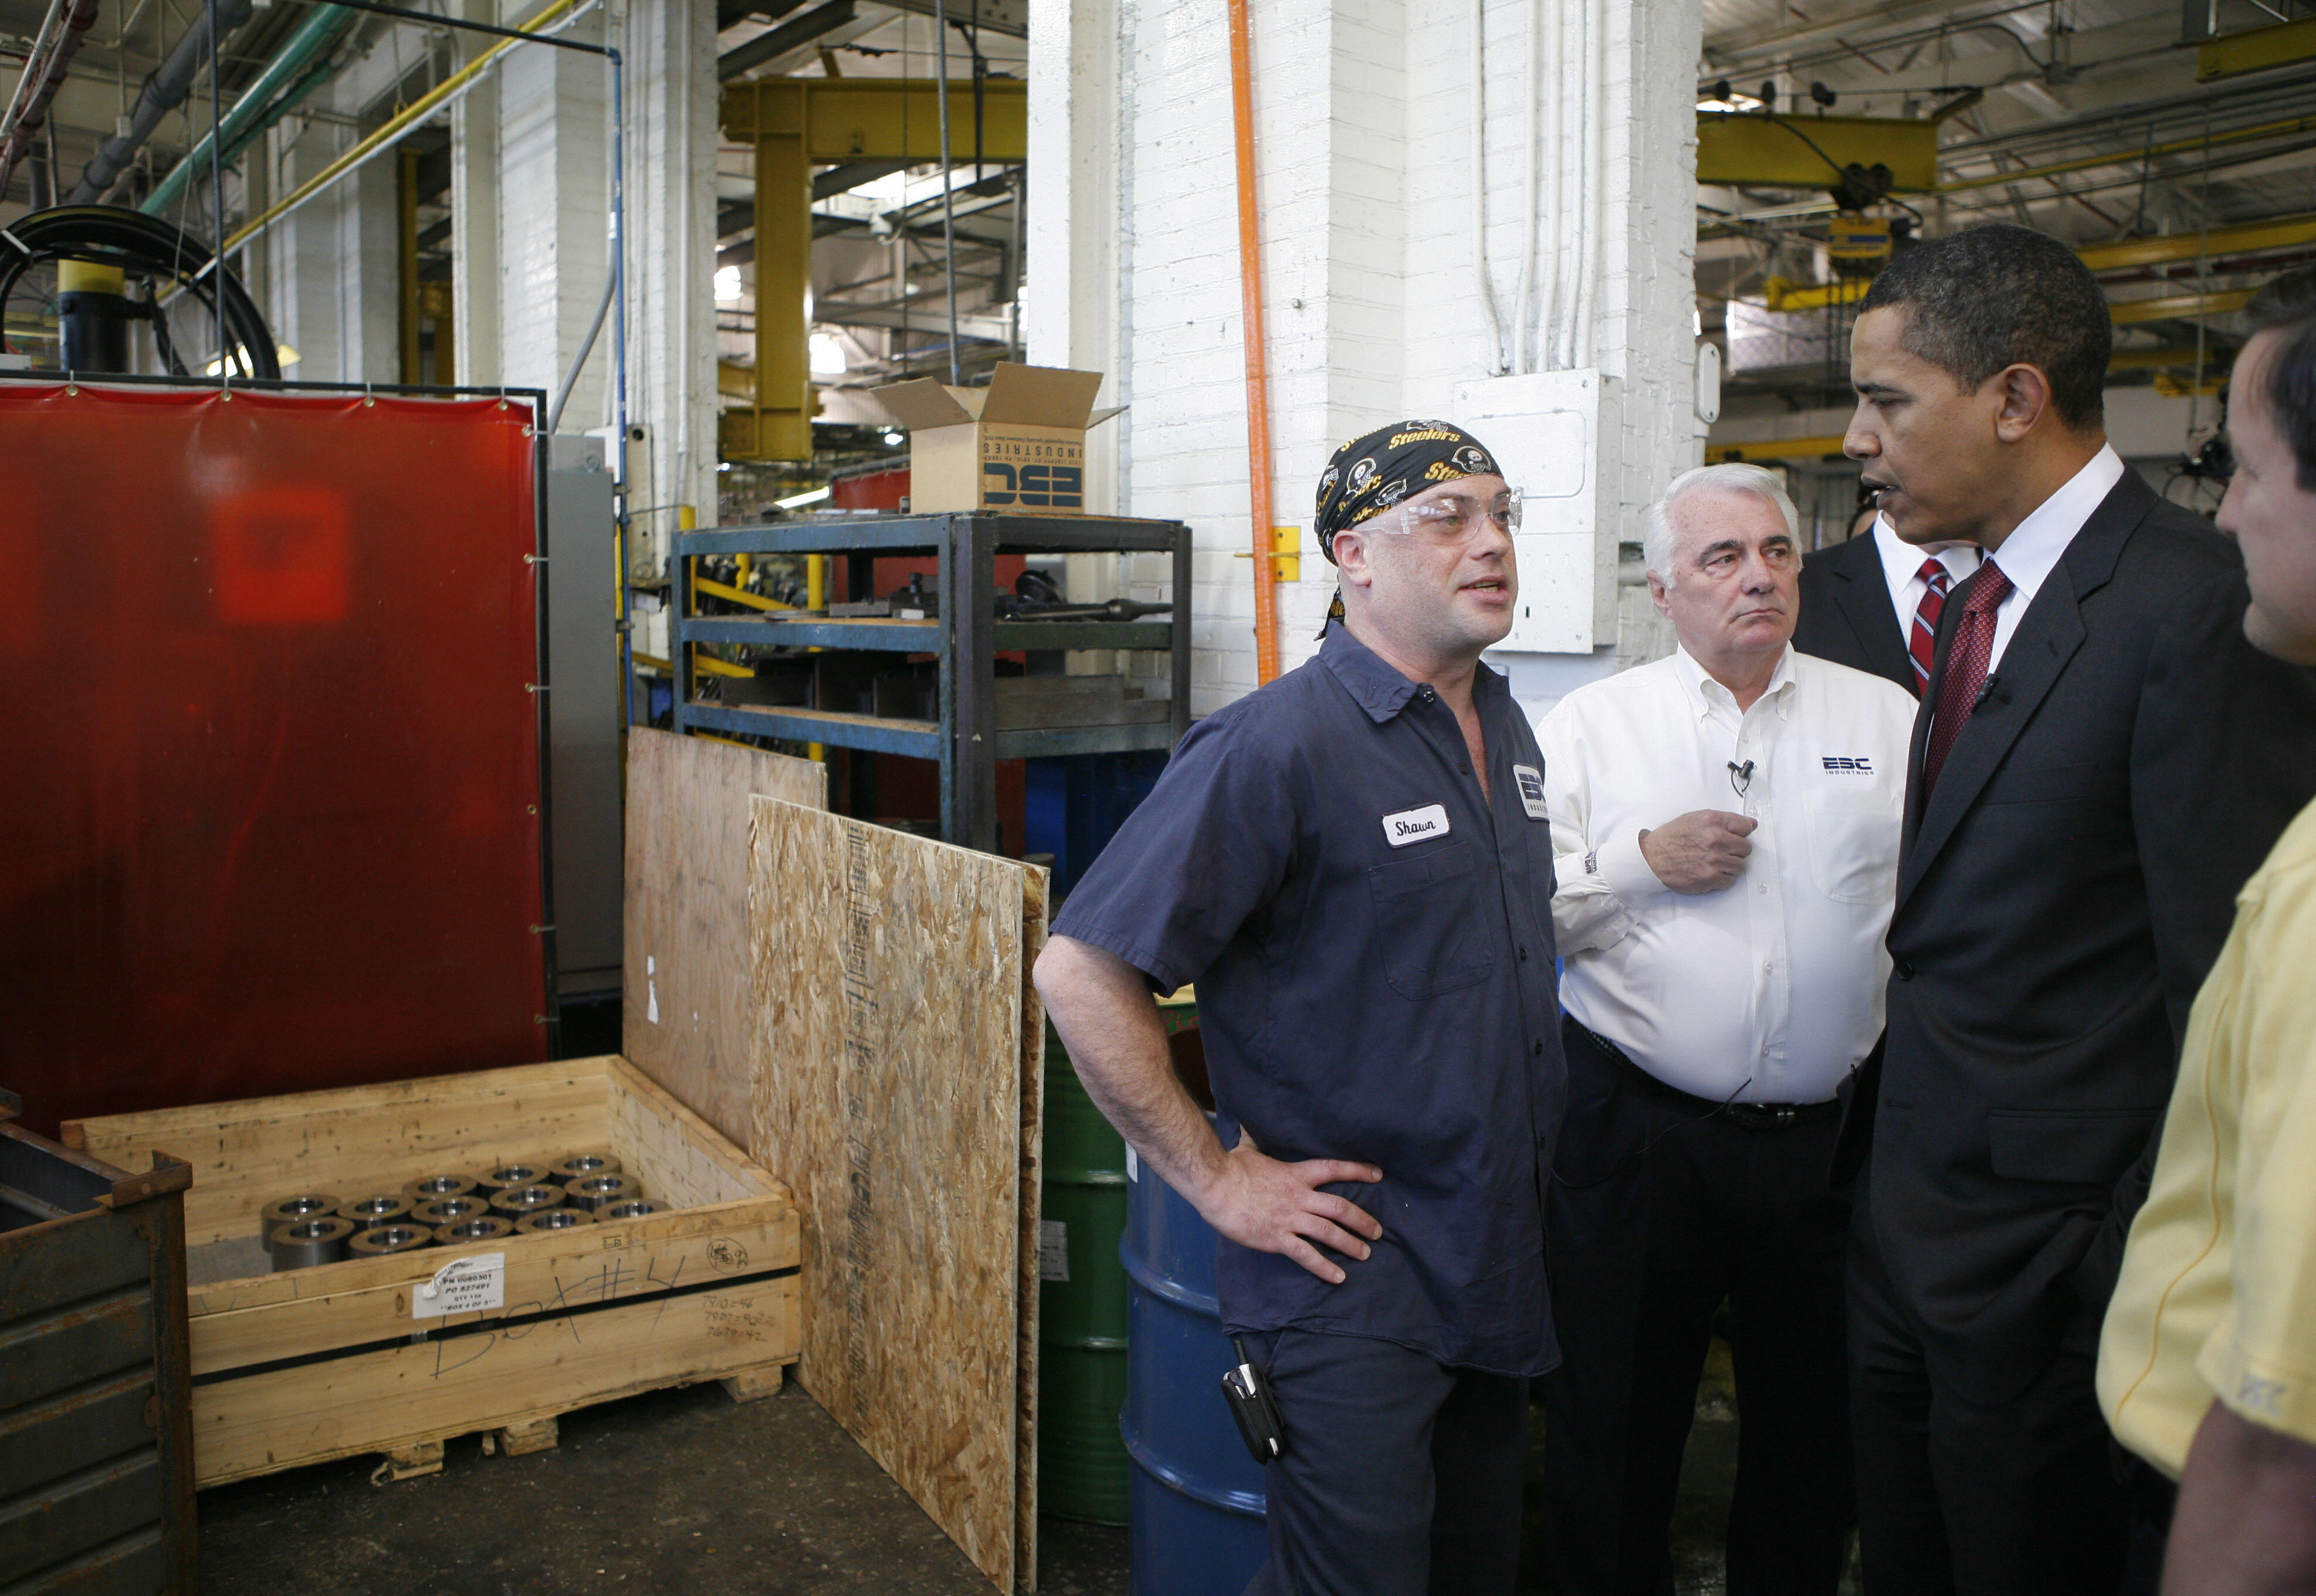 In 2008, then-candidateBarack Obama talks with workers while touring the bolt manufacturer Erie Bolt Company in Erie, Pennsylvania